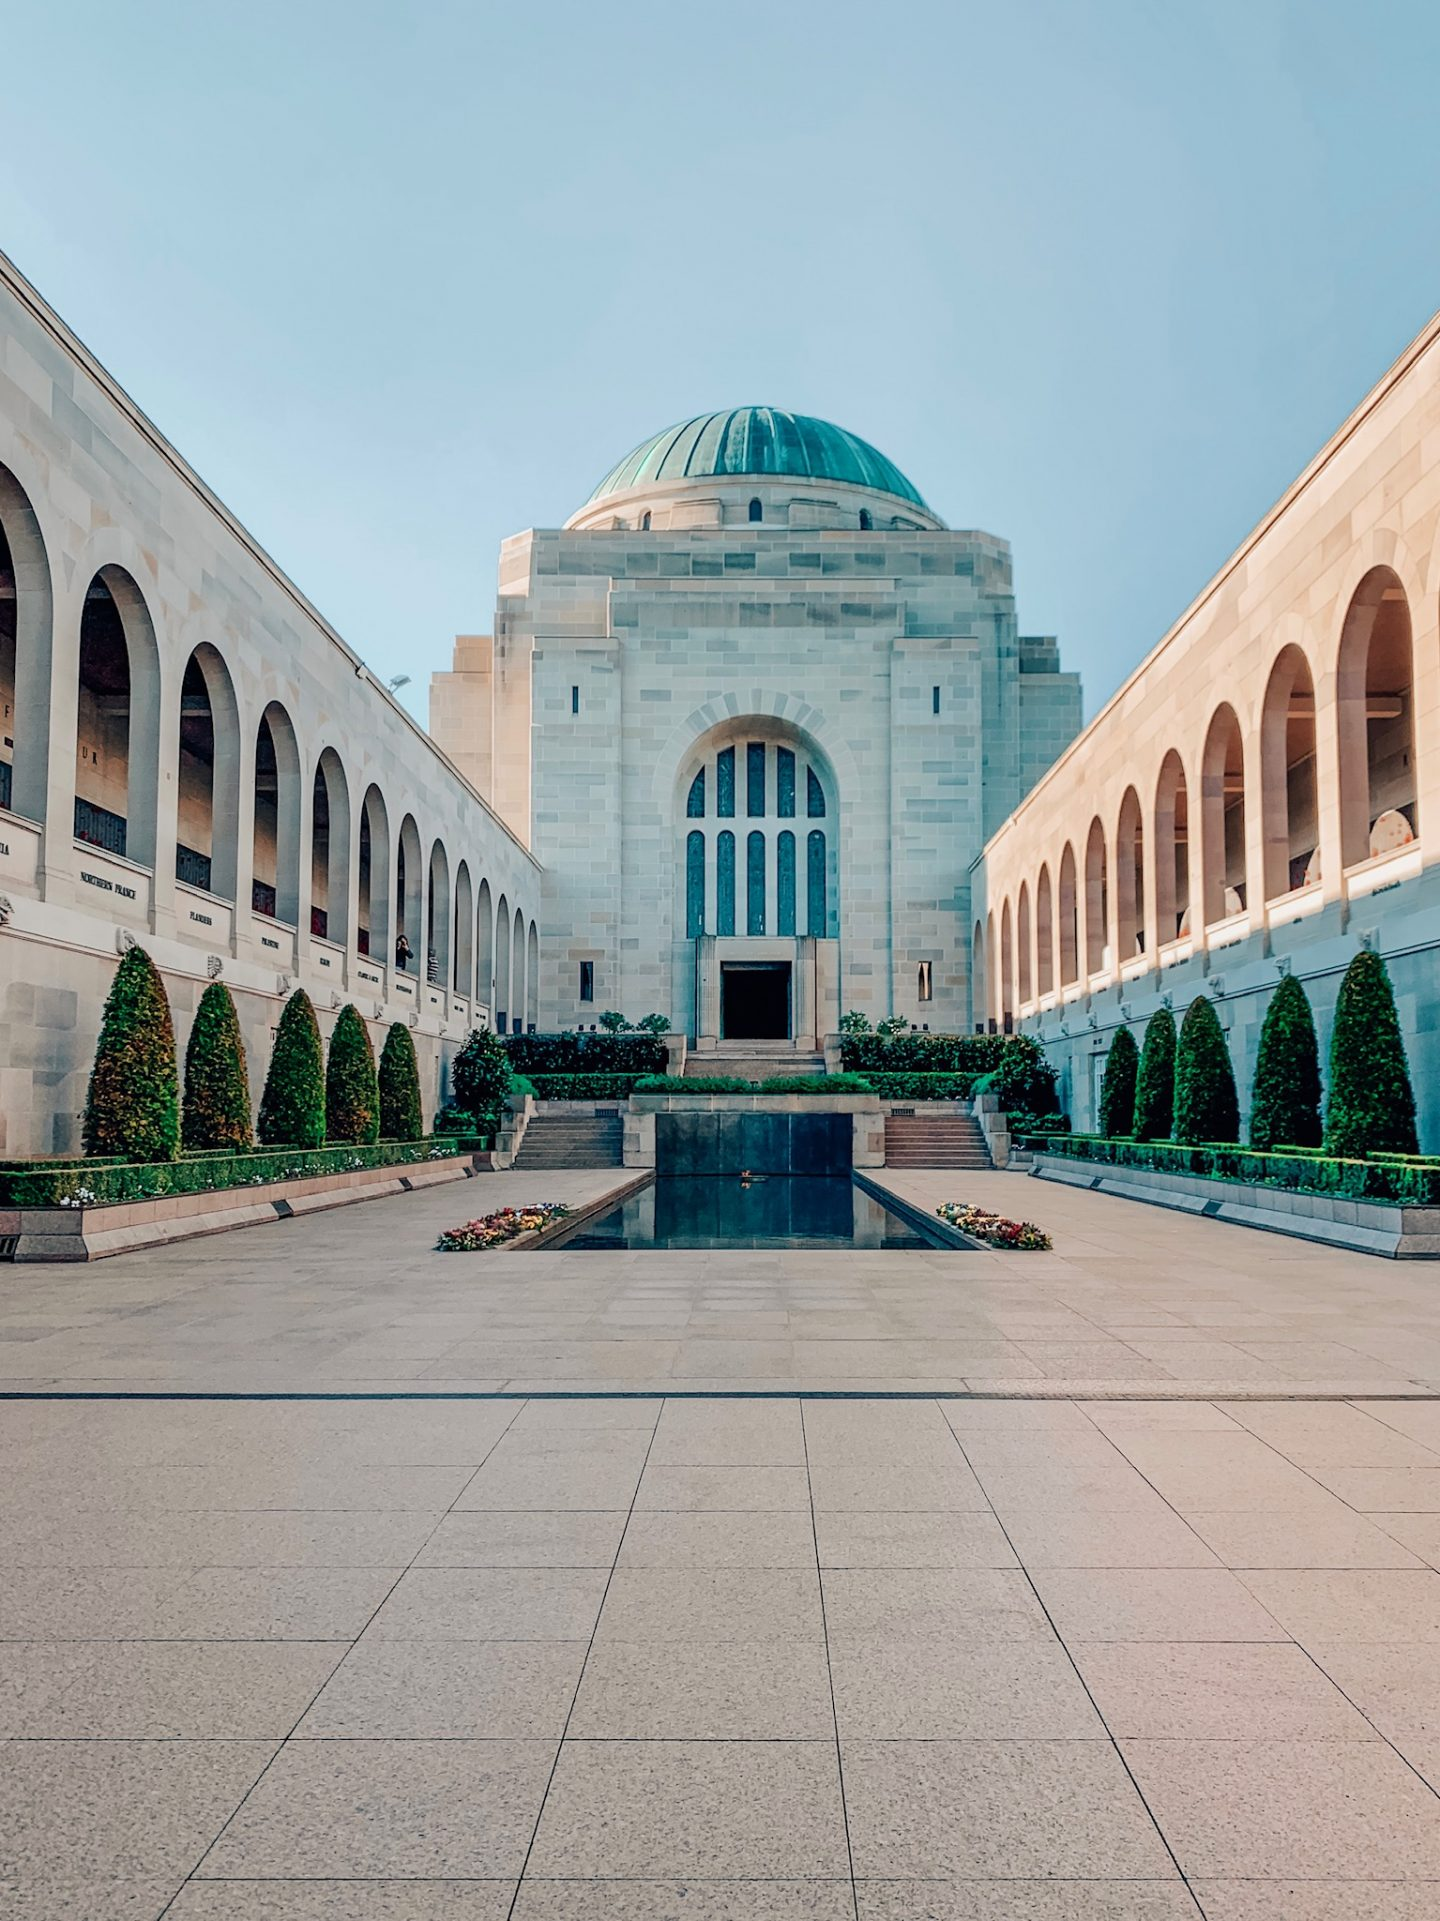 The Australian War Memorial in Canberra